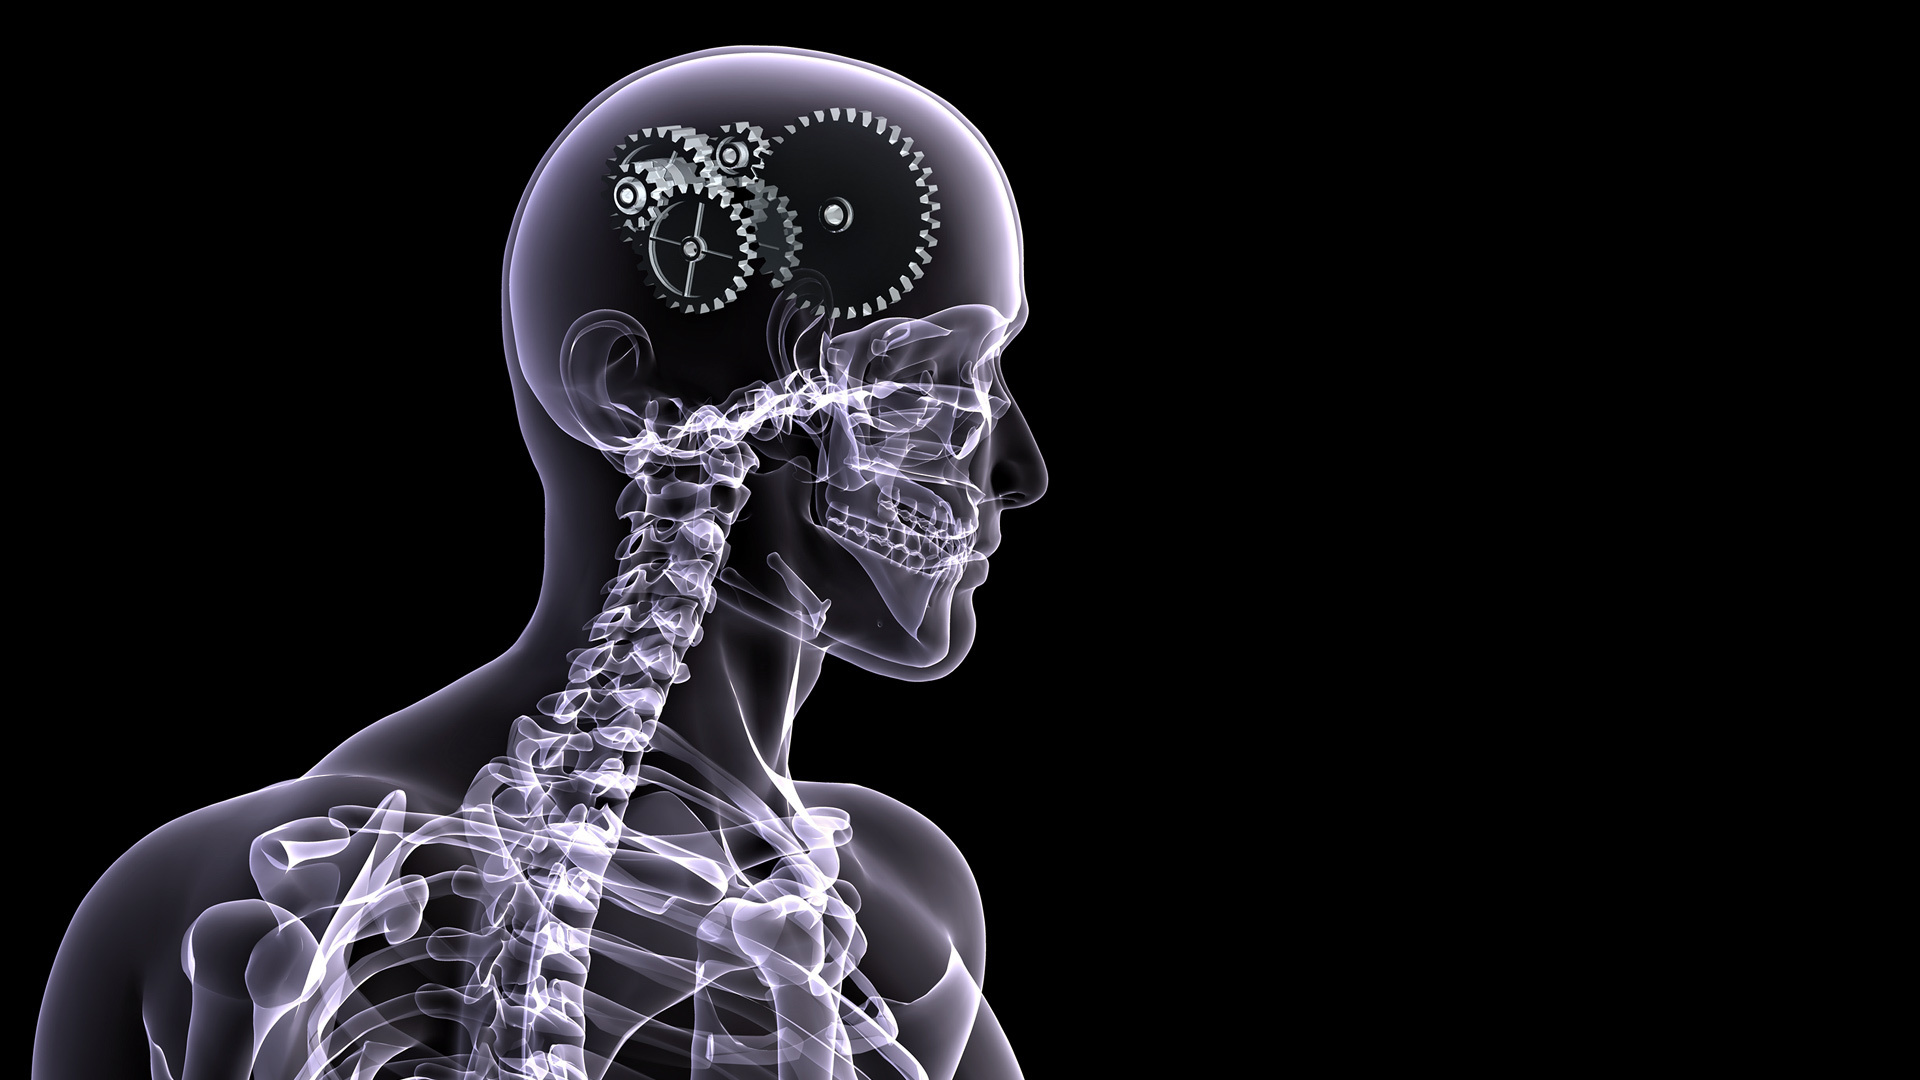 X ray hd wallpaper background image 1920x1080 id - Brain wallpaper 3d ...